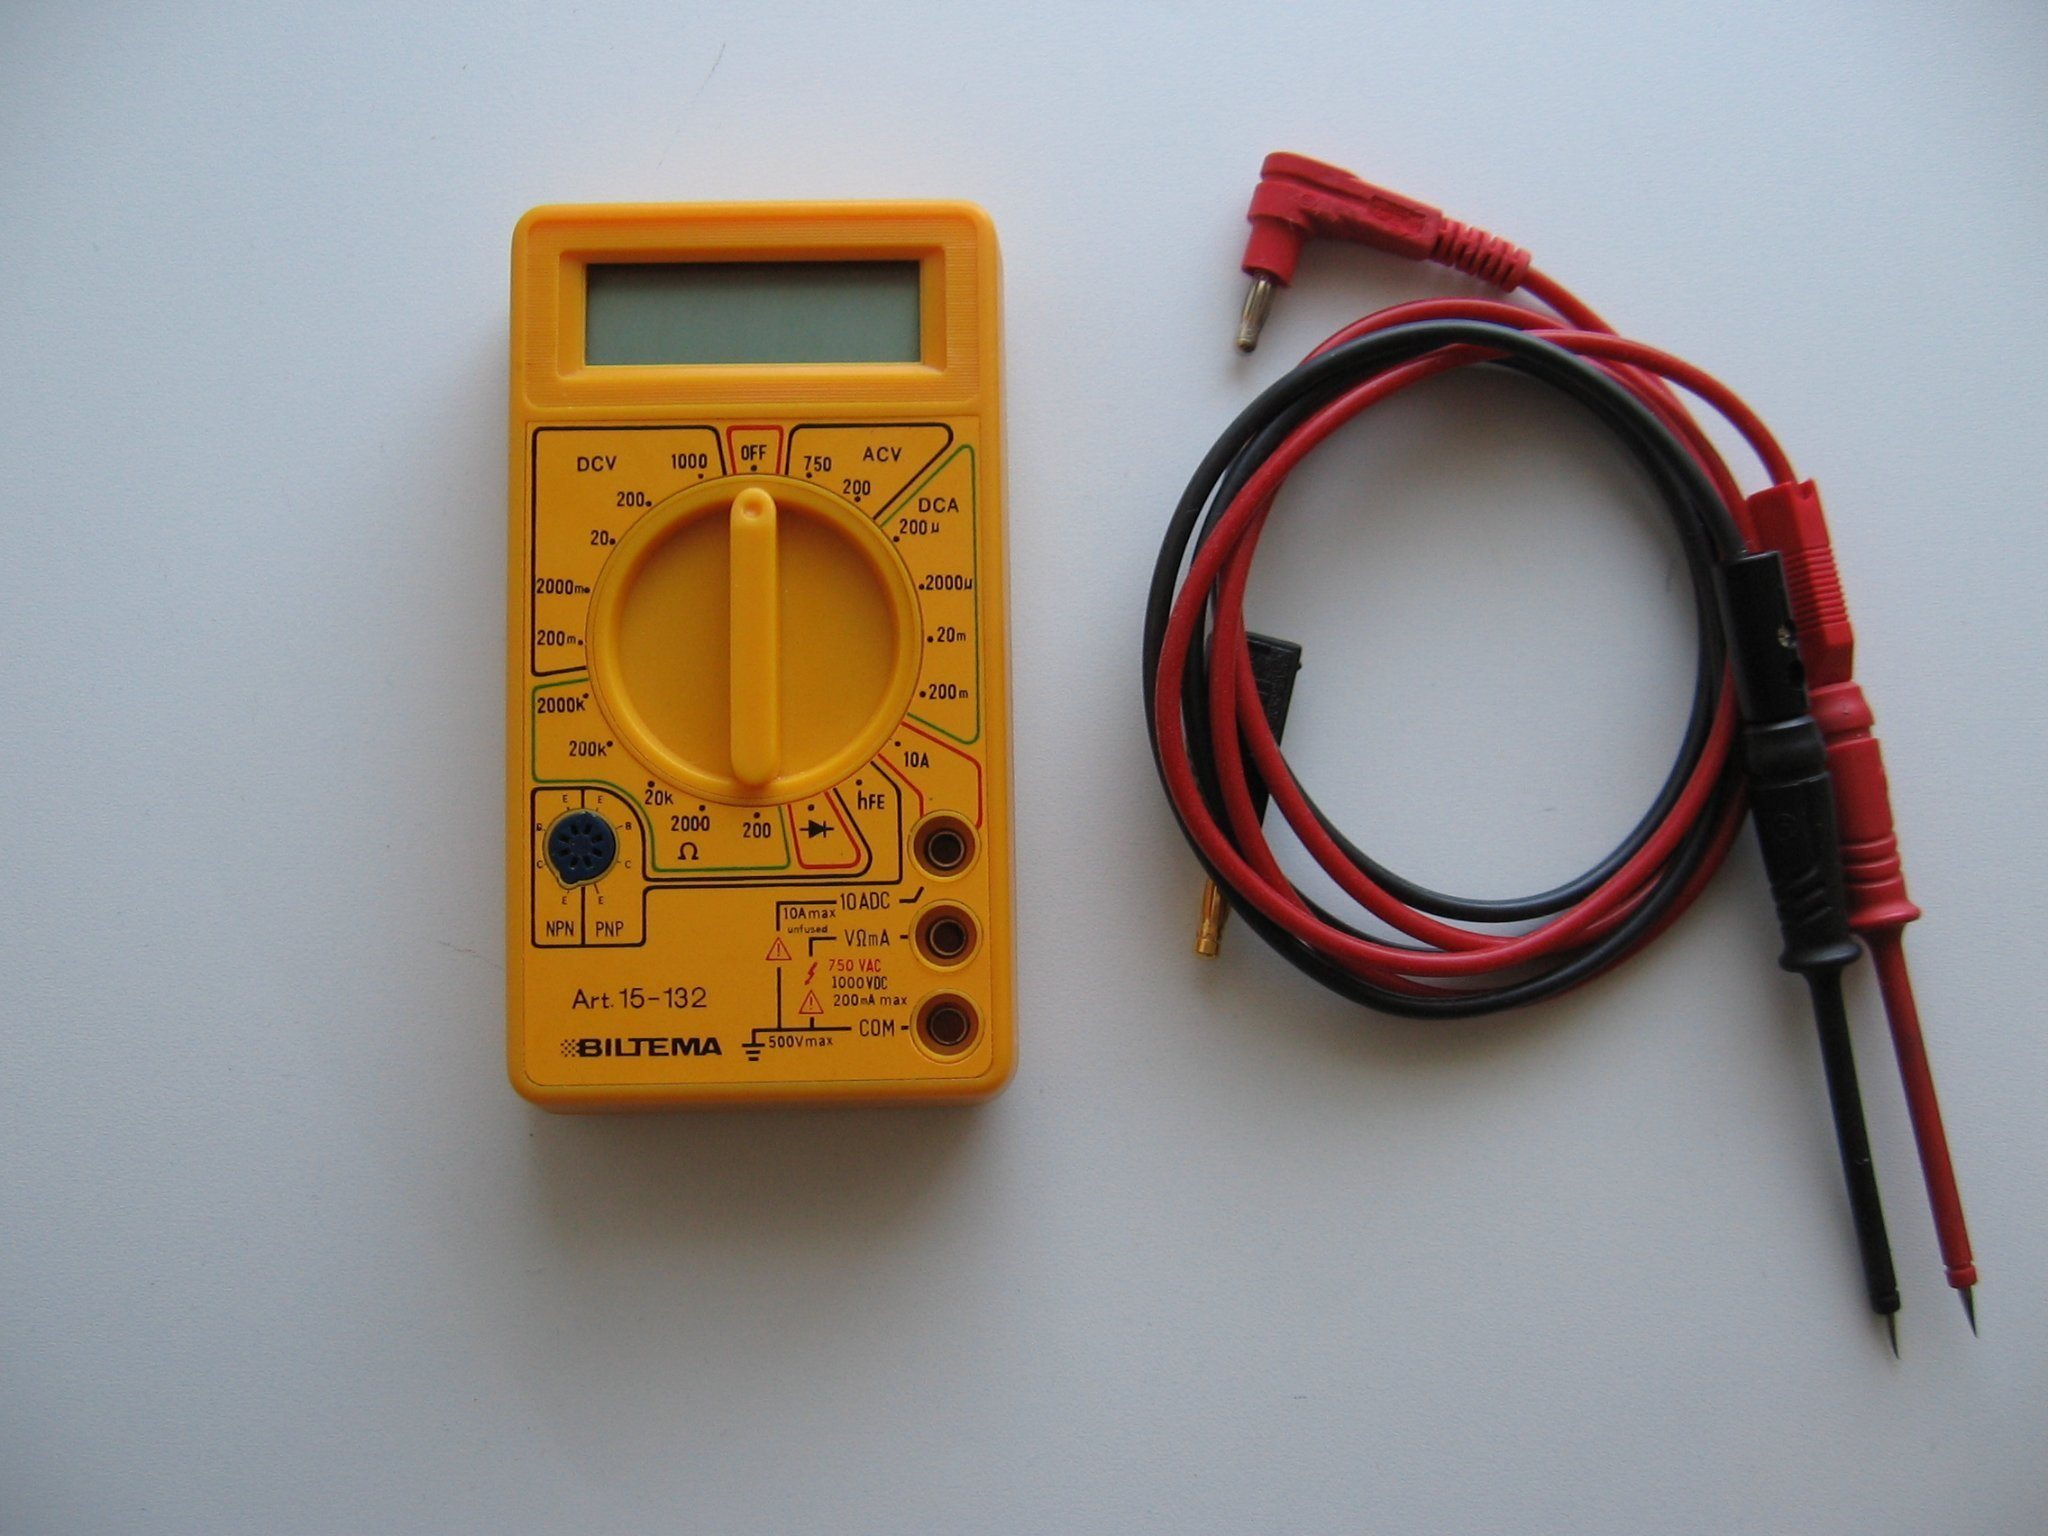 Biltema multimeter